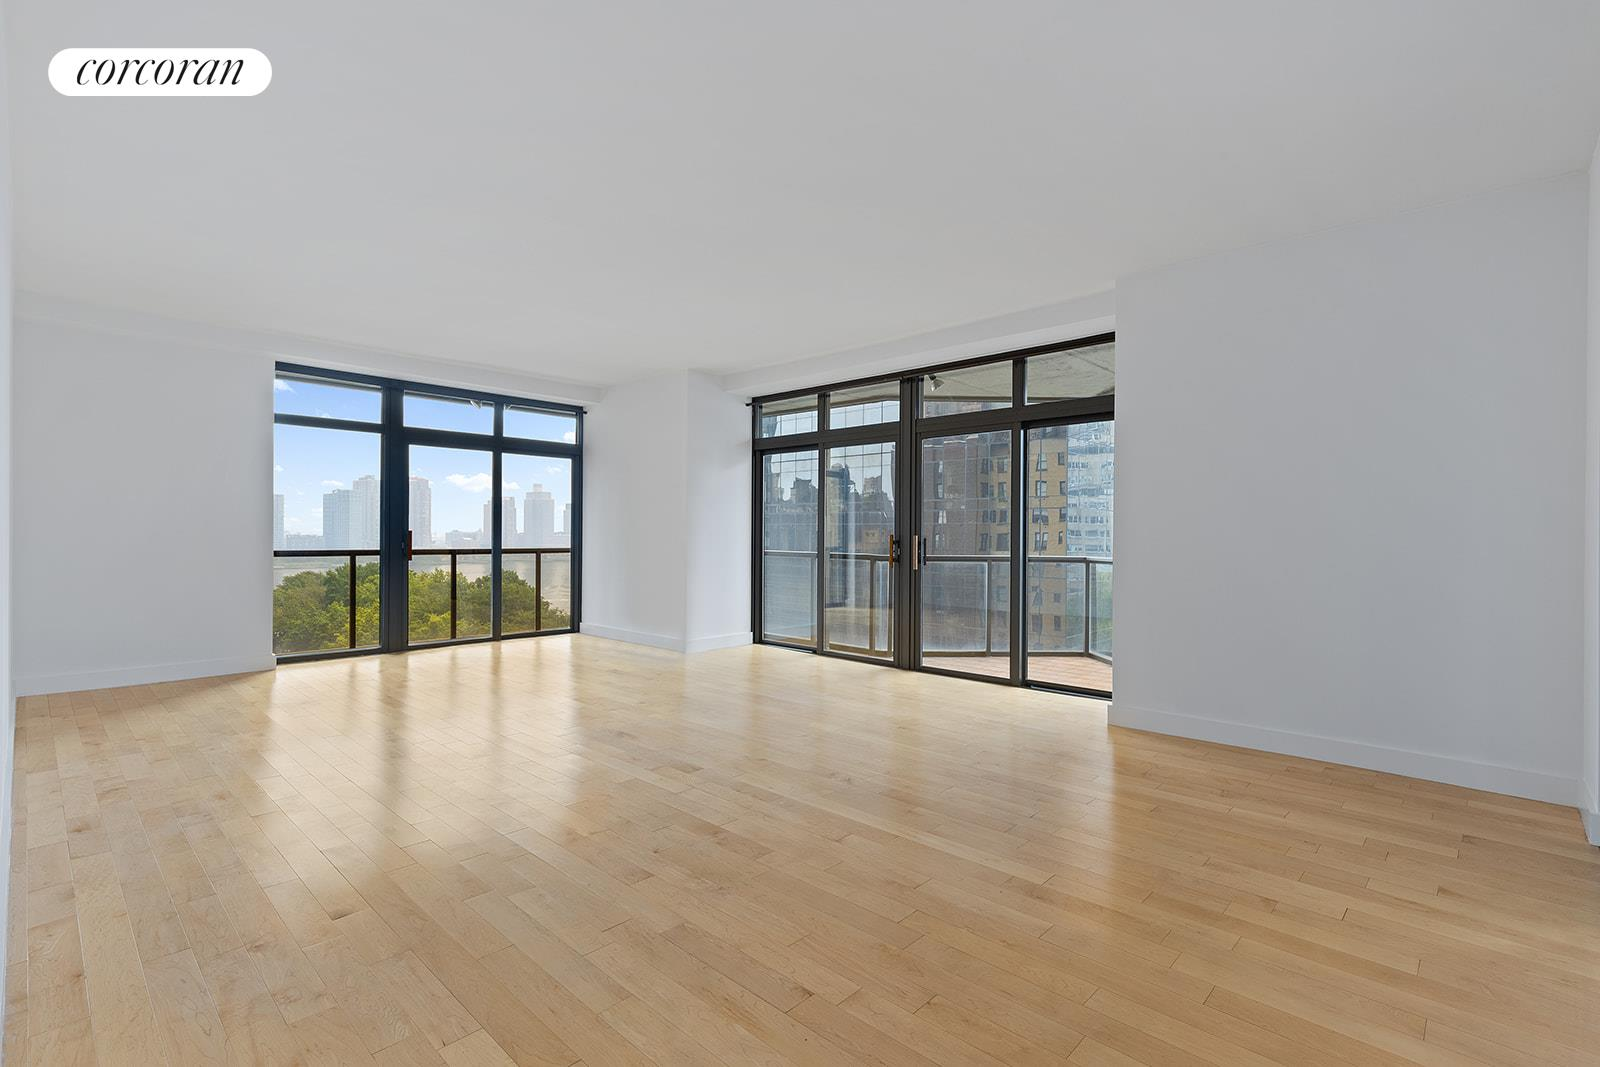 Enjoy beautiful East River and southern skyline views from this renovated, 14th floor 2 bedroom, 2.5 bathroom with wrap balcony now offered for rent at 100 United Nations Plaza - one of Midtown East's premier, white-glove condominiums.Offering a split bedroom layout and 1,324 square feet of interior living space, apartment 14B boasts a renovated kitchen and powder room, hardwood floors and a 154 square foot private wrap-around balcony. Pass through the inviting foyer into the sunlit corner living and dining room to take in the beautiful backdrop of city and river views from its floor-to-ceiling windows and private wrap balcony. Spacious enough for separate living and dining areas for easy entertaining.The adjacent windowed kitchen has been completely renovated and features white, solid wood cabinetry, Caesarstone countertops, subway tile backsplash and a suite of Whirlpool stainless steel appliances.The generous primary suite is the perfect retreat for the end of a long day. Comfortably accommodating a king size bed along with additional furnishings, it offers three large closets one of which is a walk-in and an en suite marble bathroom with an extra-large vanity and soaking bathtub.Pin-drop quiet, the second bedroom has with an eastern exposure along with its own en suite marble bathroom. In addition, this fantastic unit has central heat and A/C and a renovated powder room with a pedestal sink and marble tile.Located on East 48th Street and First Avenue, 100 United Nations Plaza is a white-glove, full service condominium in Manhattan's Turtle Bay neighborhood. Greeting residents with beautifully landscaped gardens and waterfalls, this impeccably run building offers a 24-hour doorman, valet and concierge service, on-site management office, renovated lobby and resident's lounge, common laundry room, fitness center and direct access to a parking garage. Conveniently located to transportation and many great shops and restaurants.Condominium application required. Showin